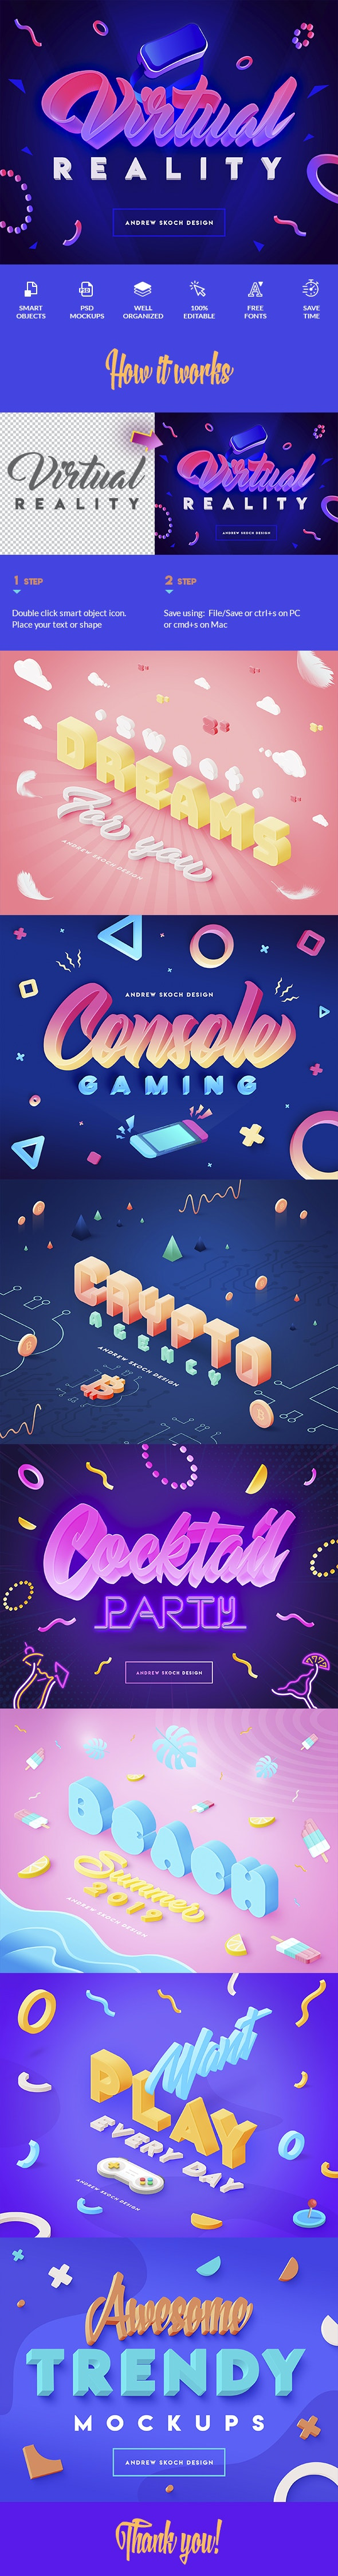 Vibrant 3D Text Effects - Text Effects Actions